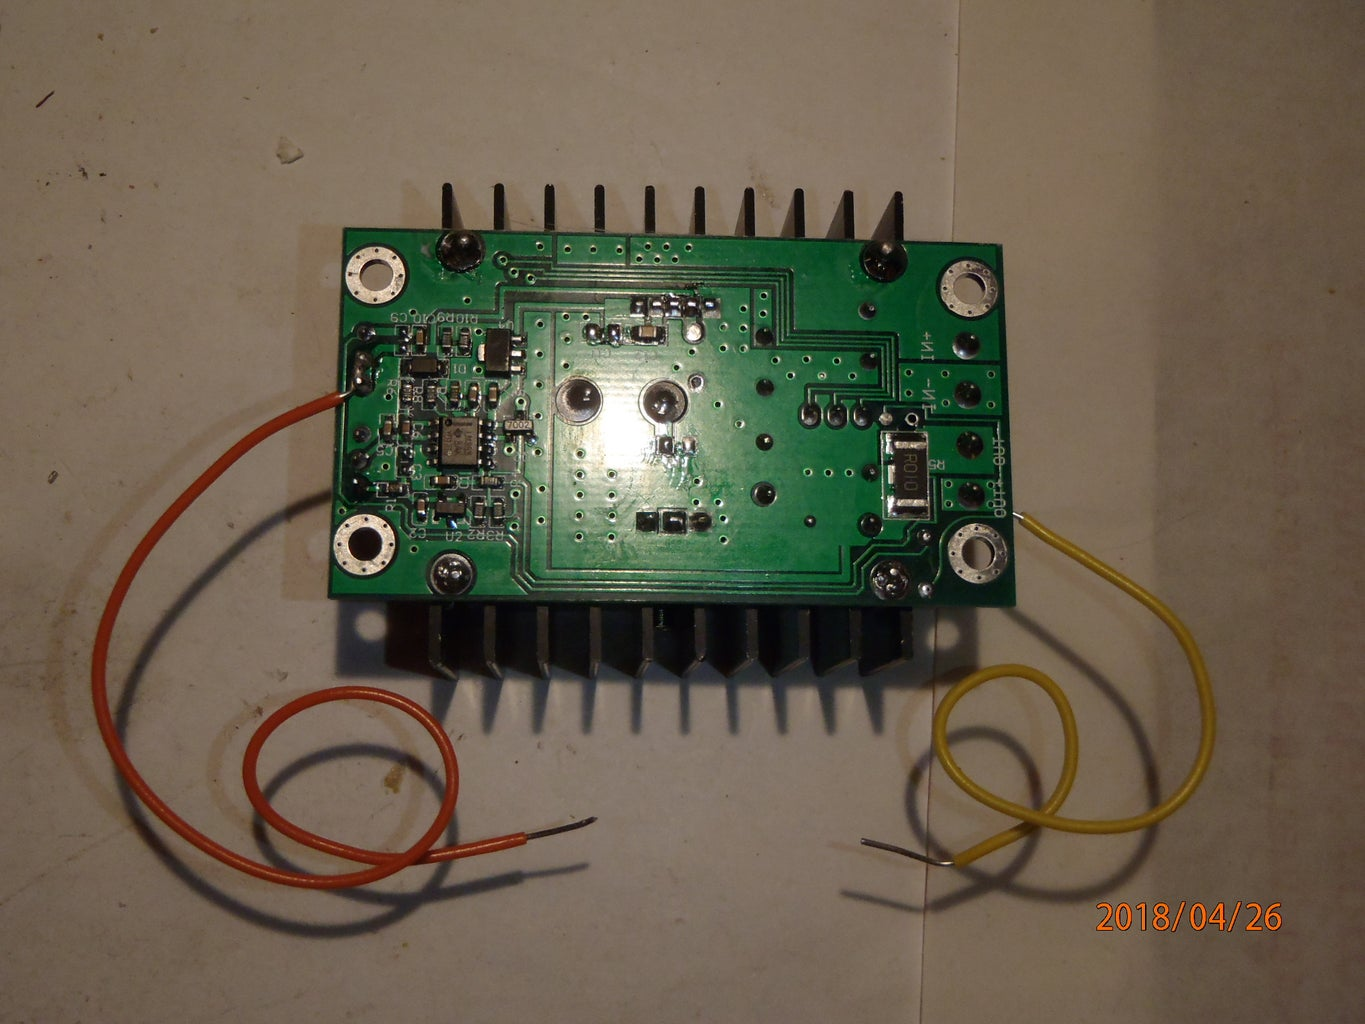 Controlling the Voltage of the XL4016 Module